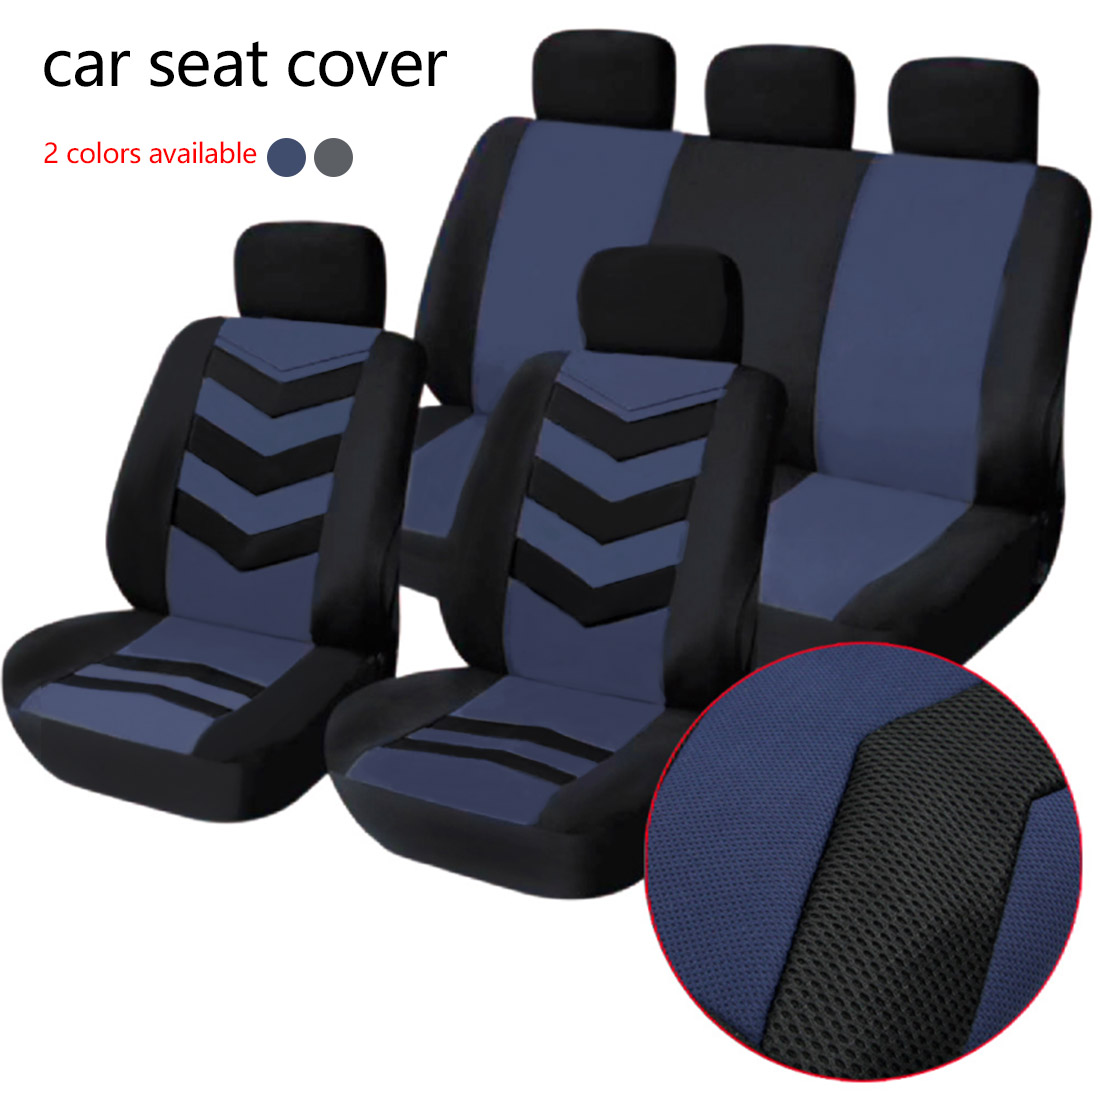 Dewtreetali Car Front Seat Cover Sandwich Four Seasons Universal Seat Protector Cushion Cover Fit Most Auto Car SUV Car Styling dewtreetali universal automoblies seat cover four seaons car seat protector full set car accessories car styling for vw bmw audi